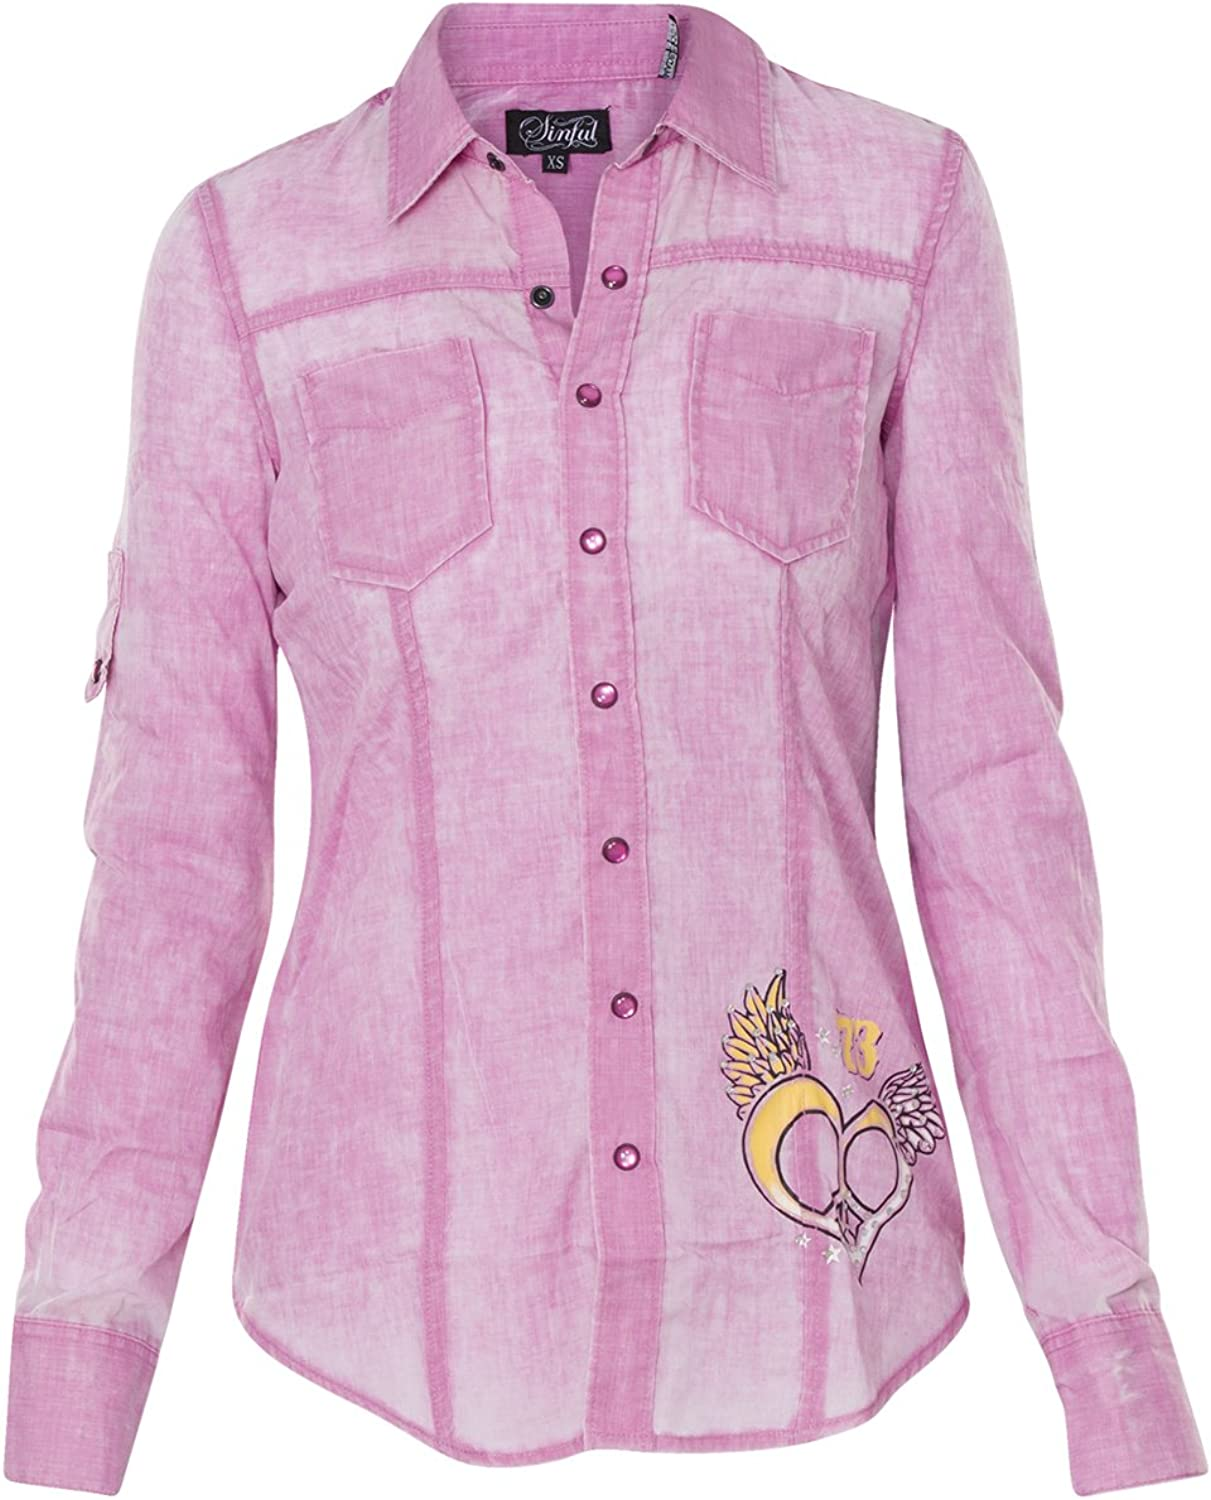 Sinful Maven Long Sleeve Fashion Woven Button Down Shirt By Affliction